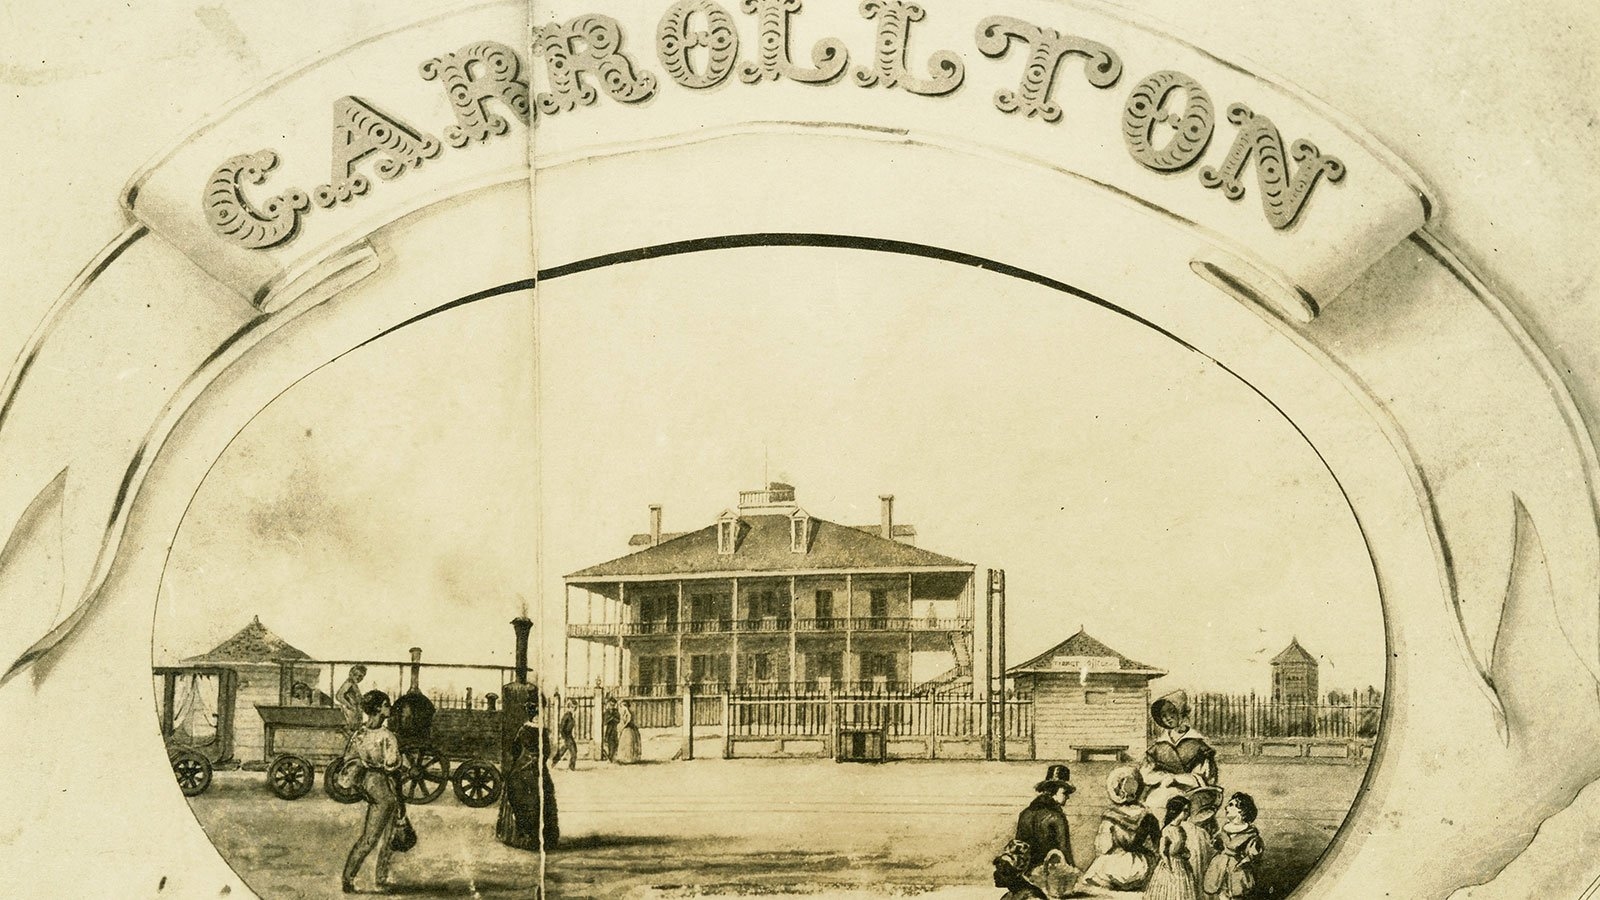 drawing of the Carrolton Hotel